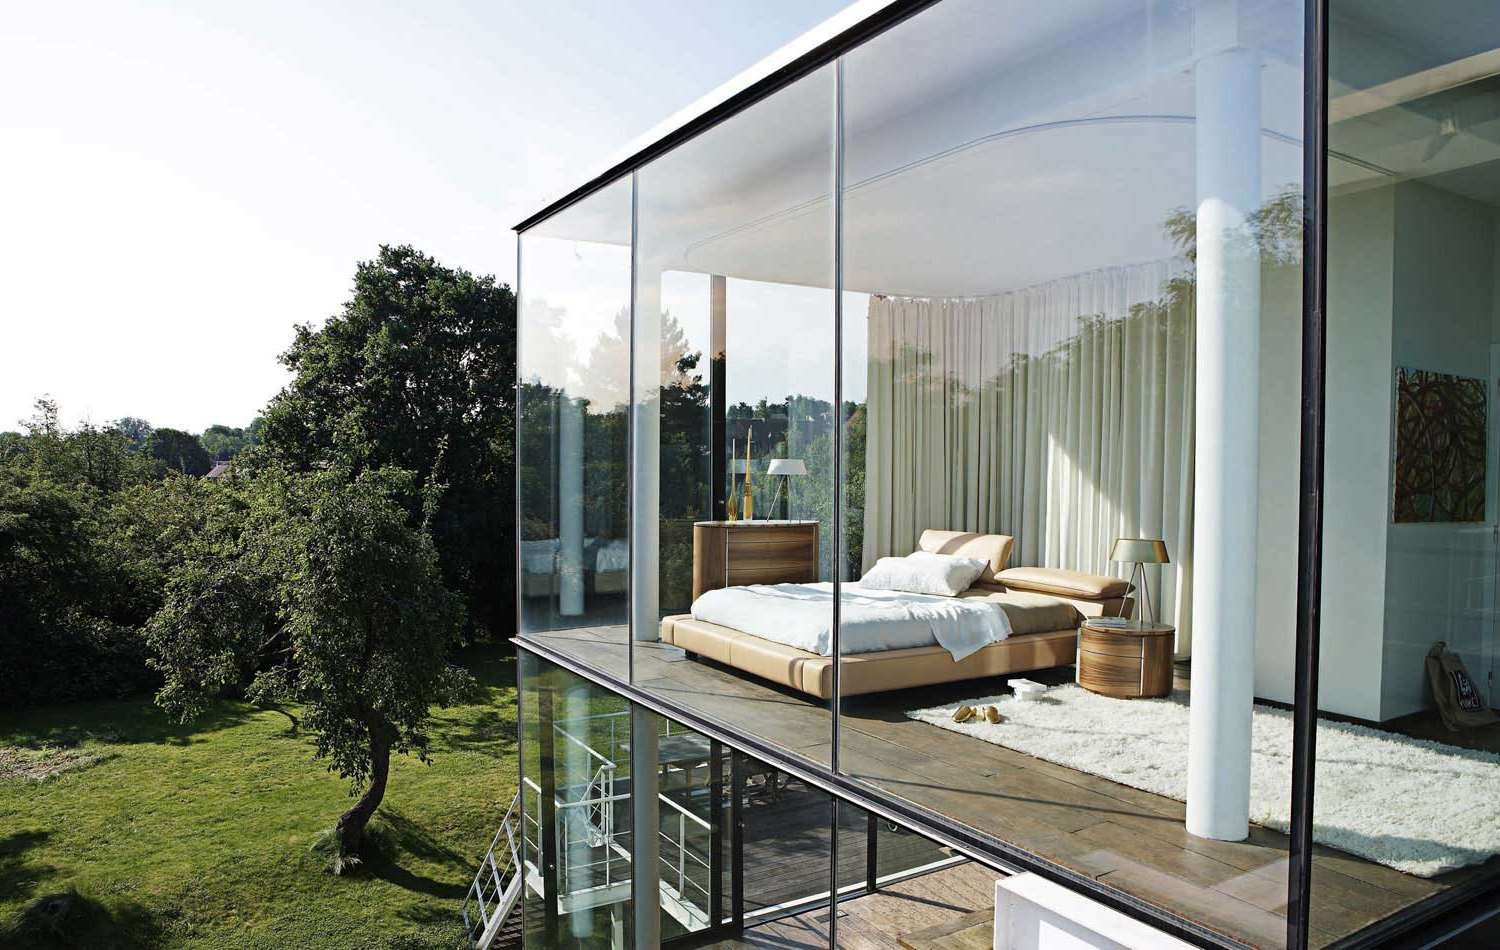 Panoramafenster 25 Cool Bedroom Designs To Dream About At Night